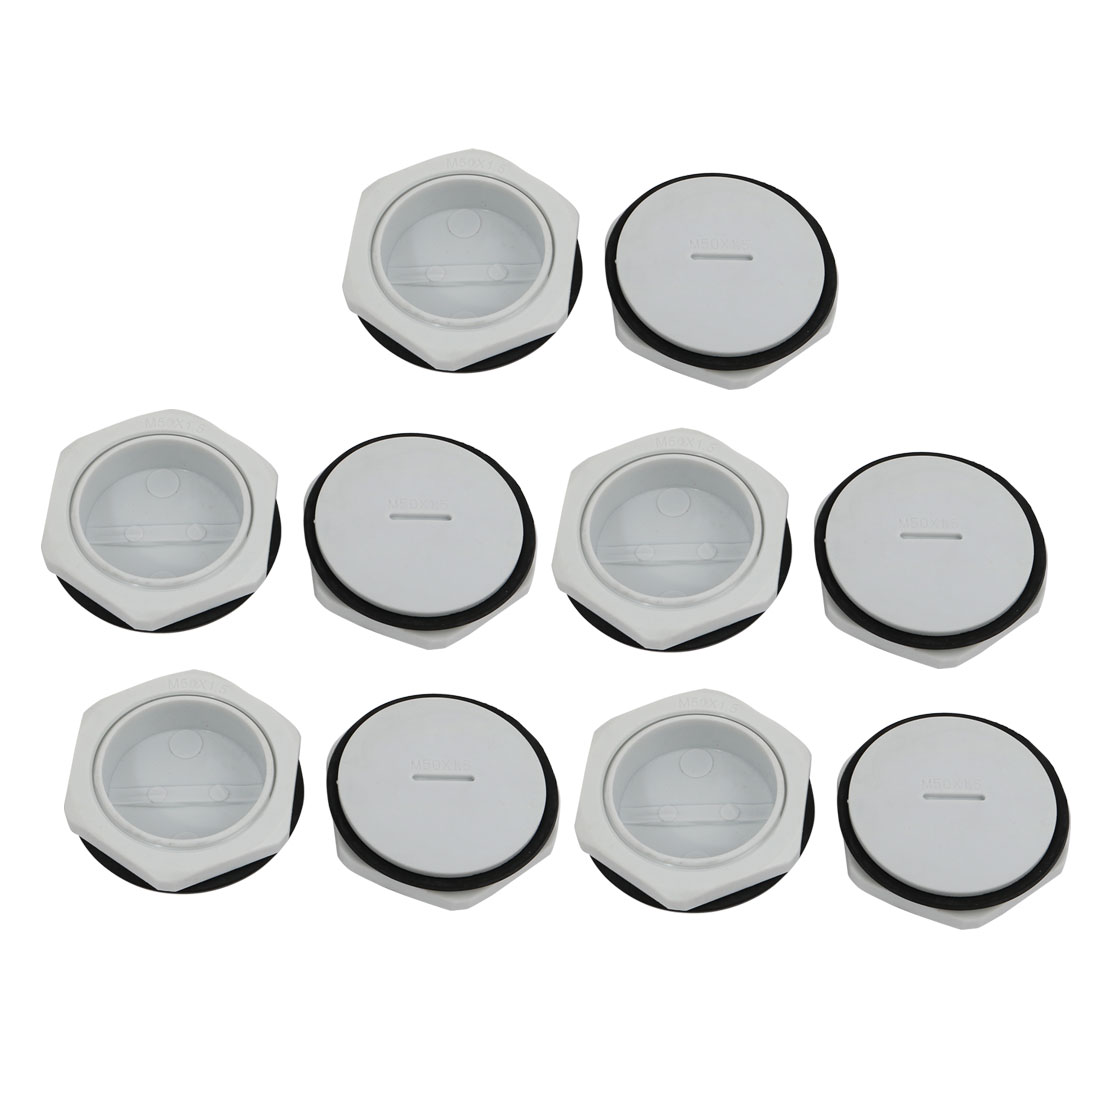 10pcs GLW-M50 Nylon Threaded Cable Gland Cap Round Screw-in Cover Gray w Washer